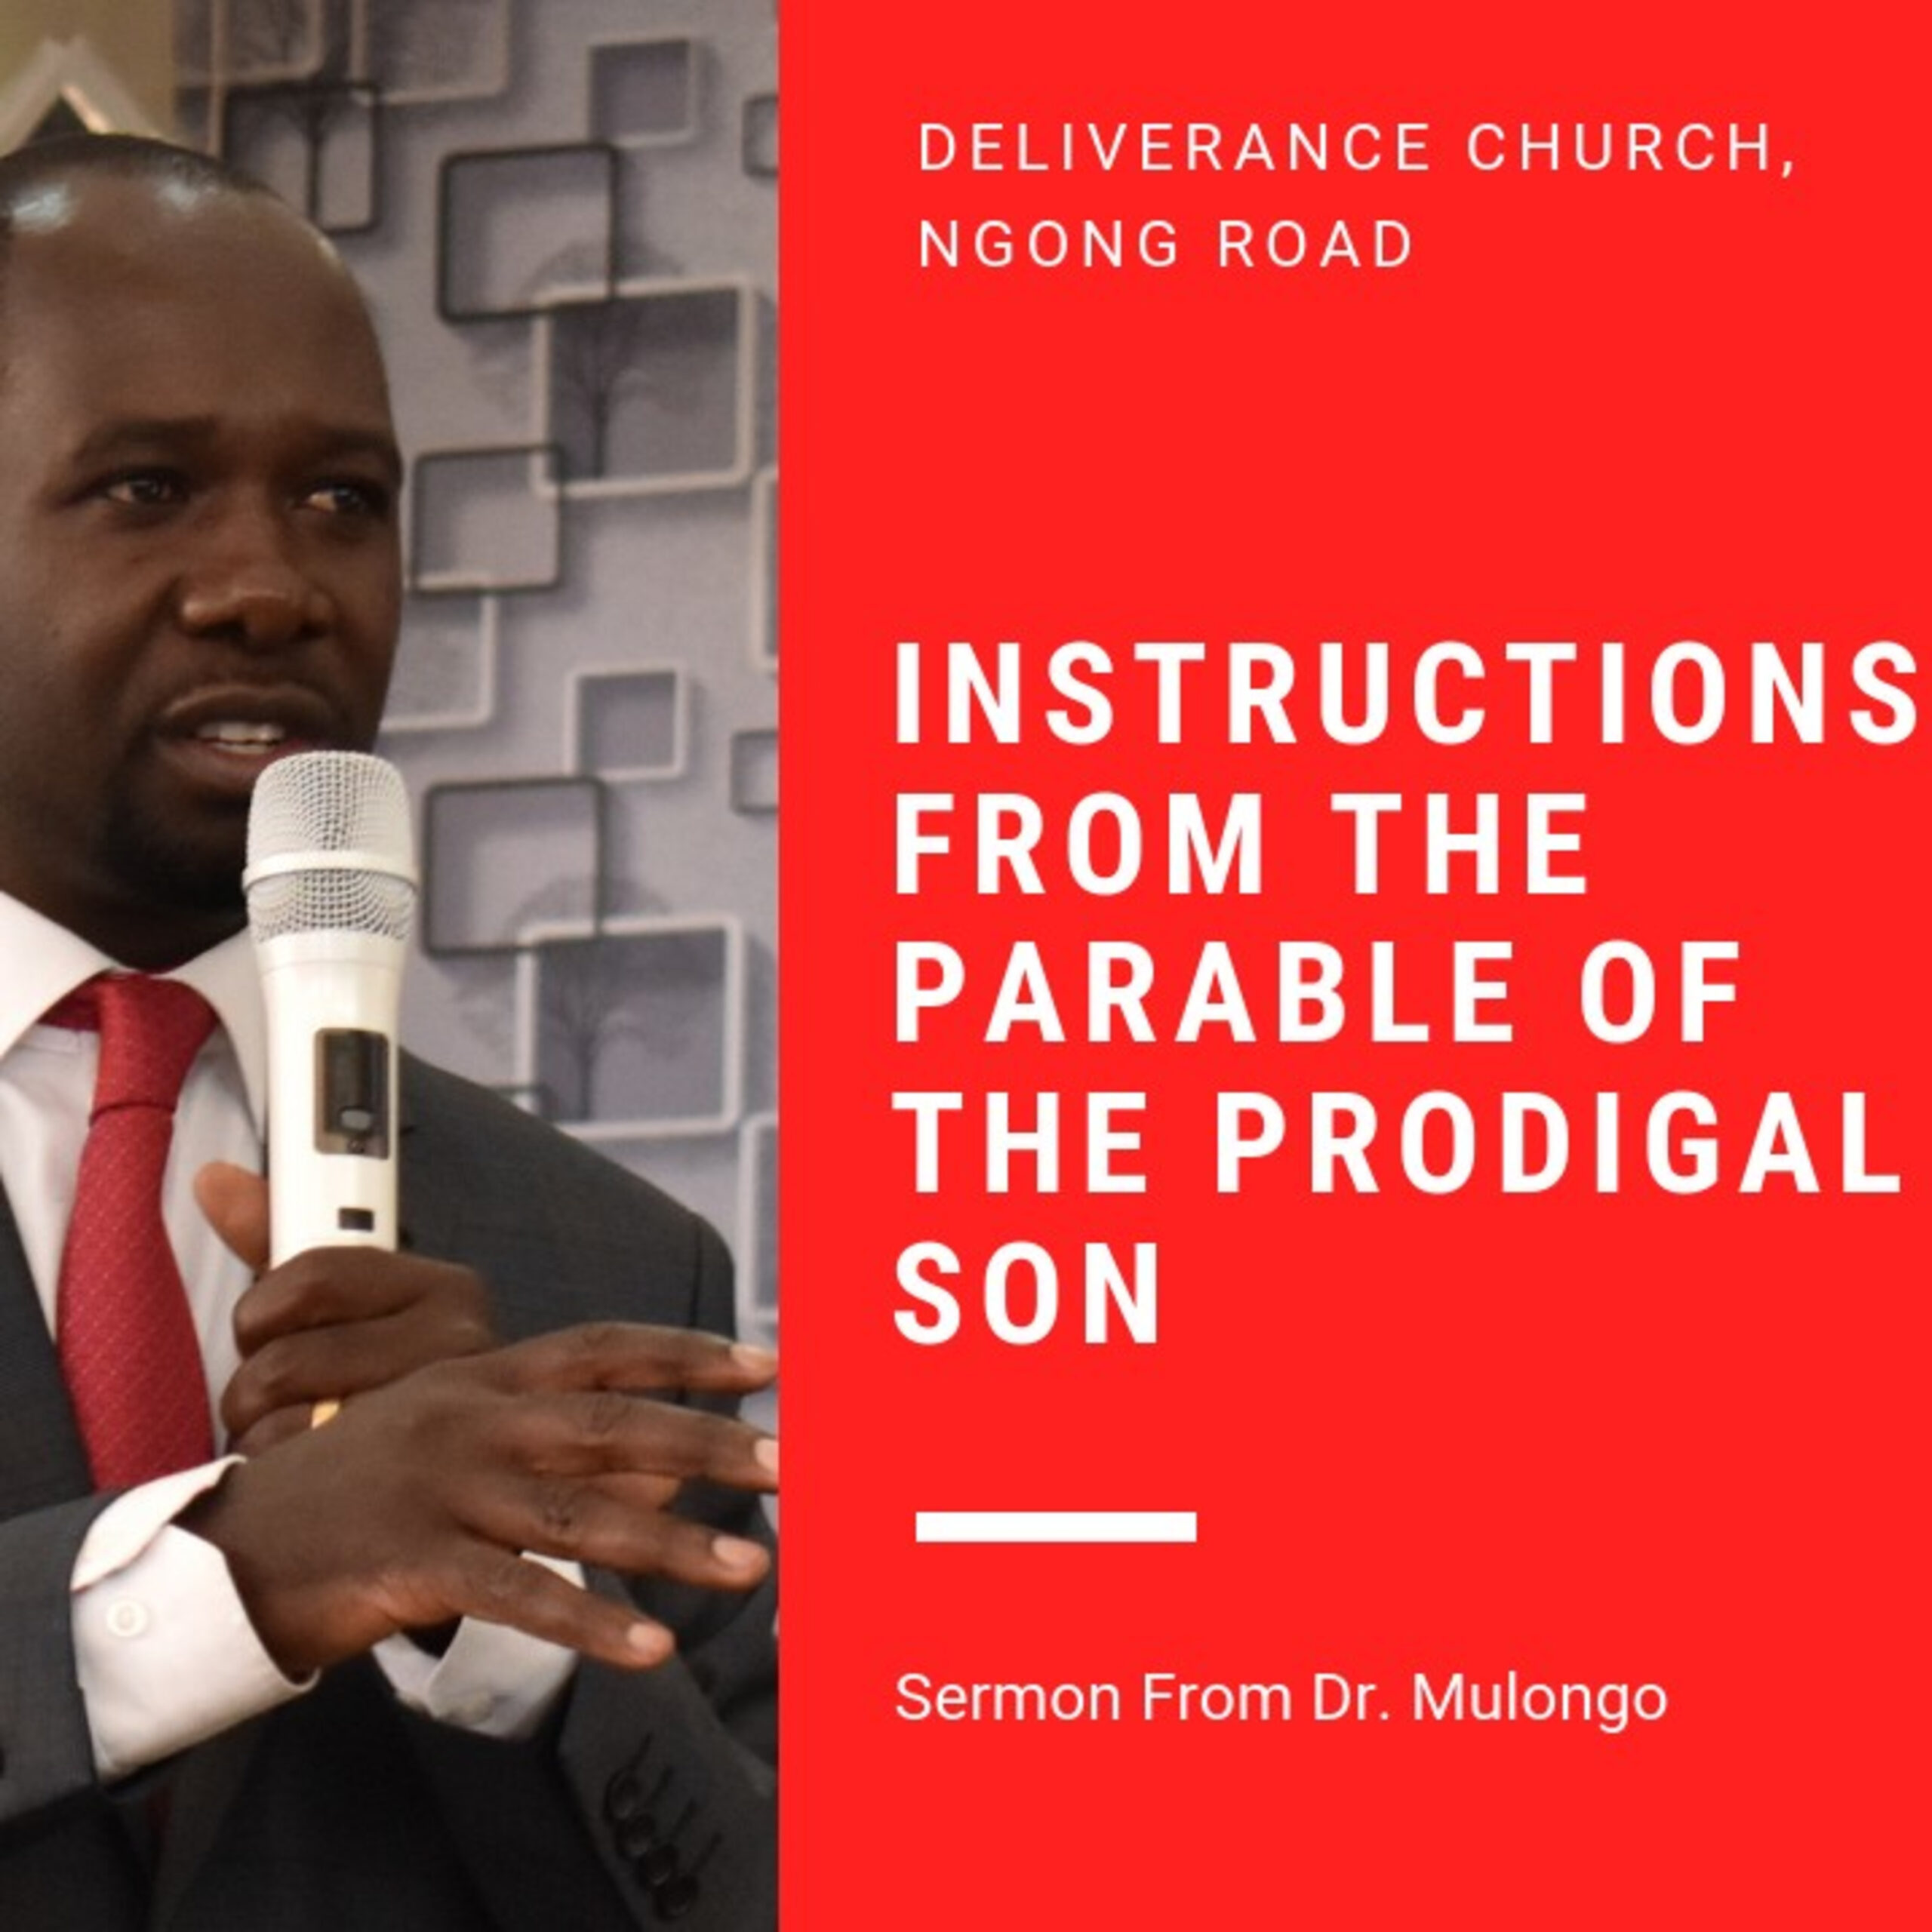 Instructions from the Parable of the Prodigal Son